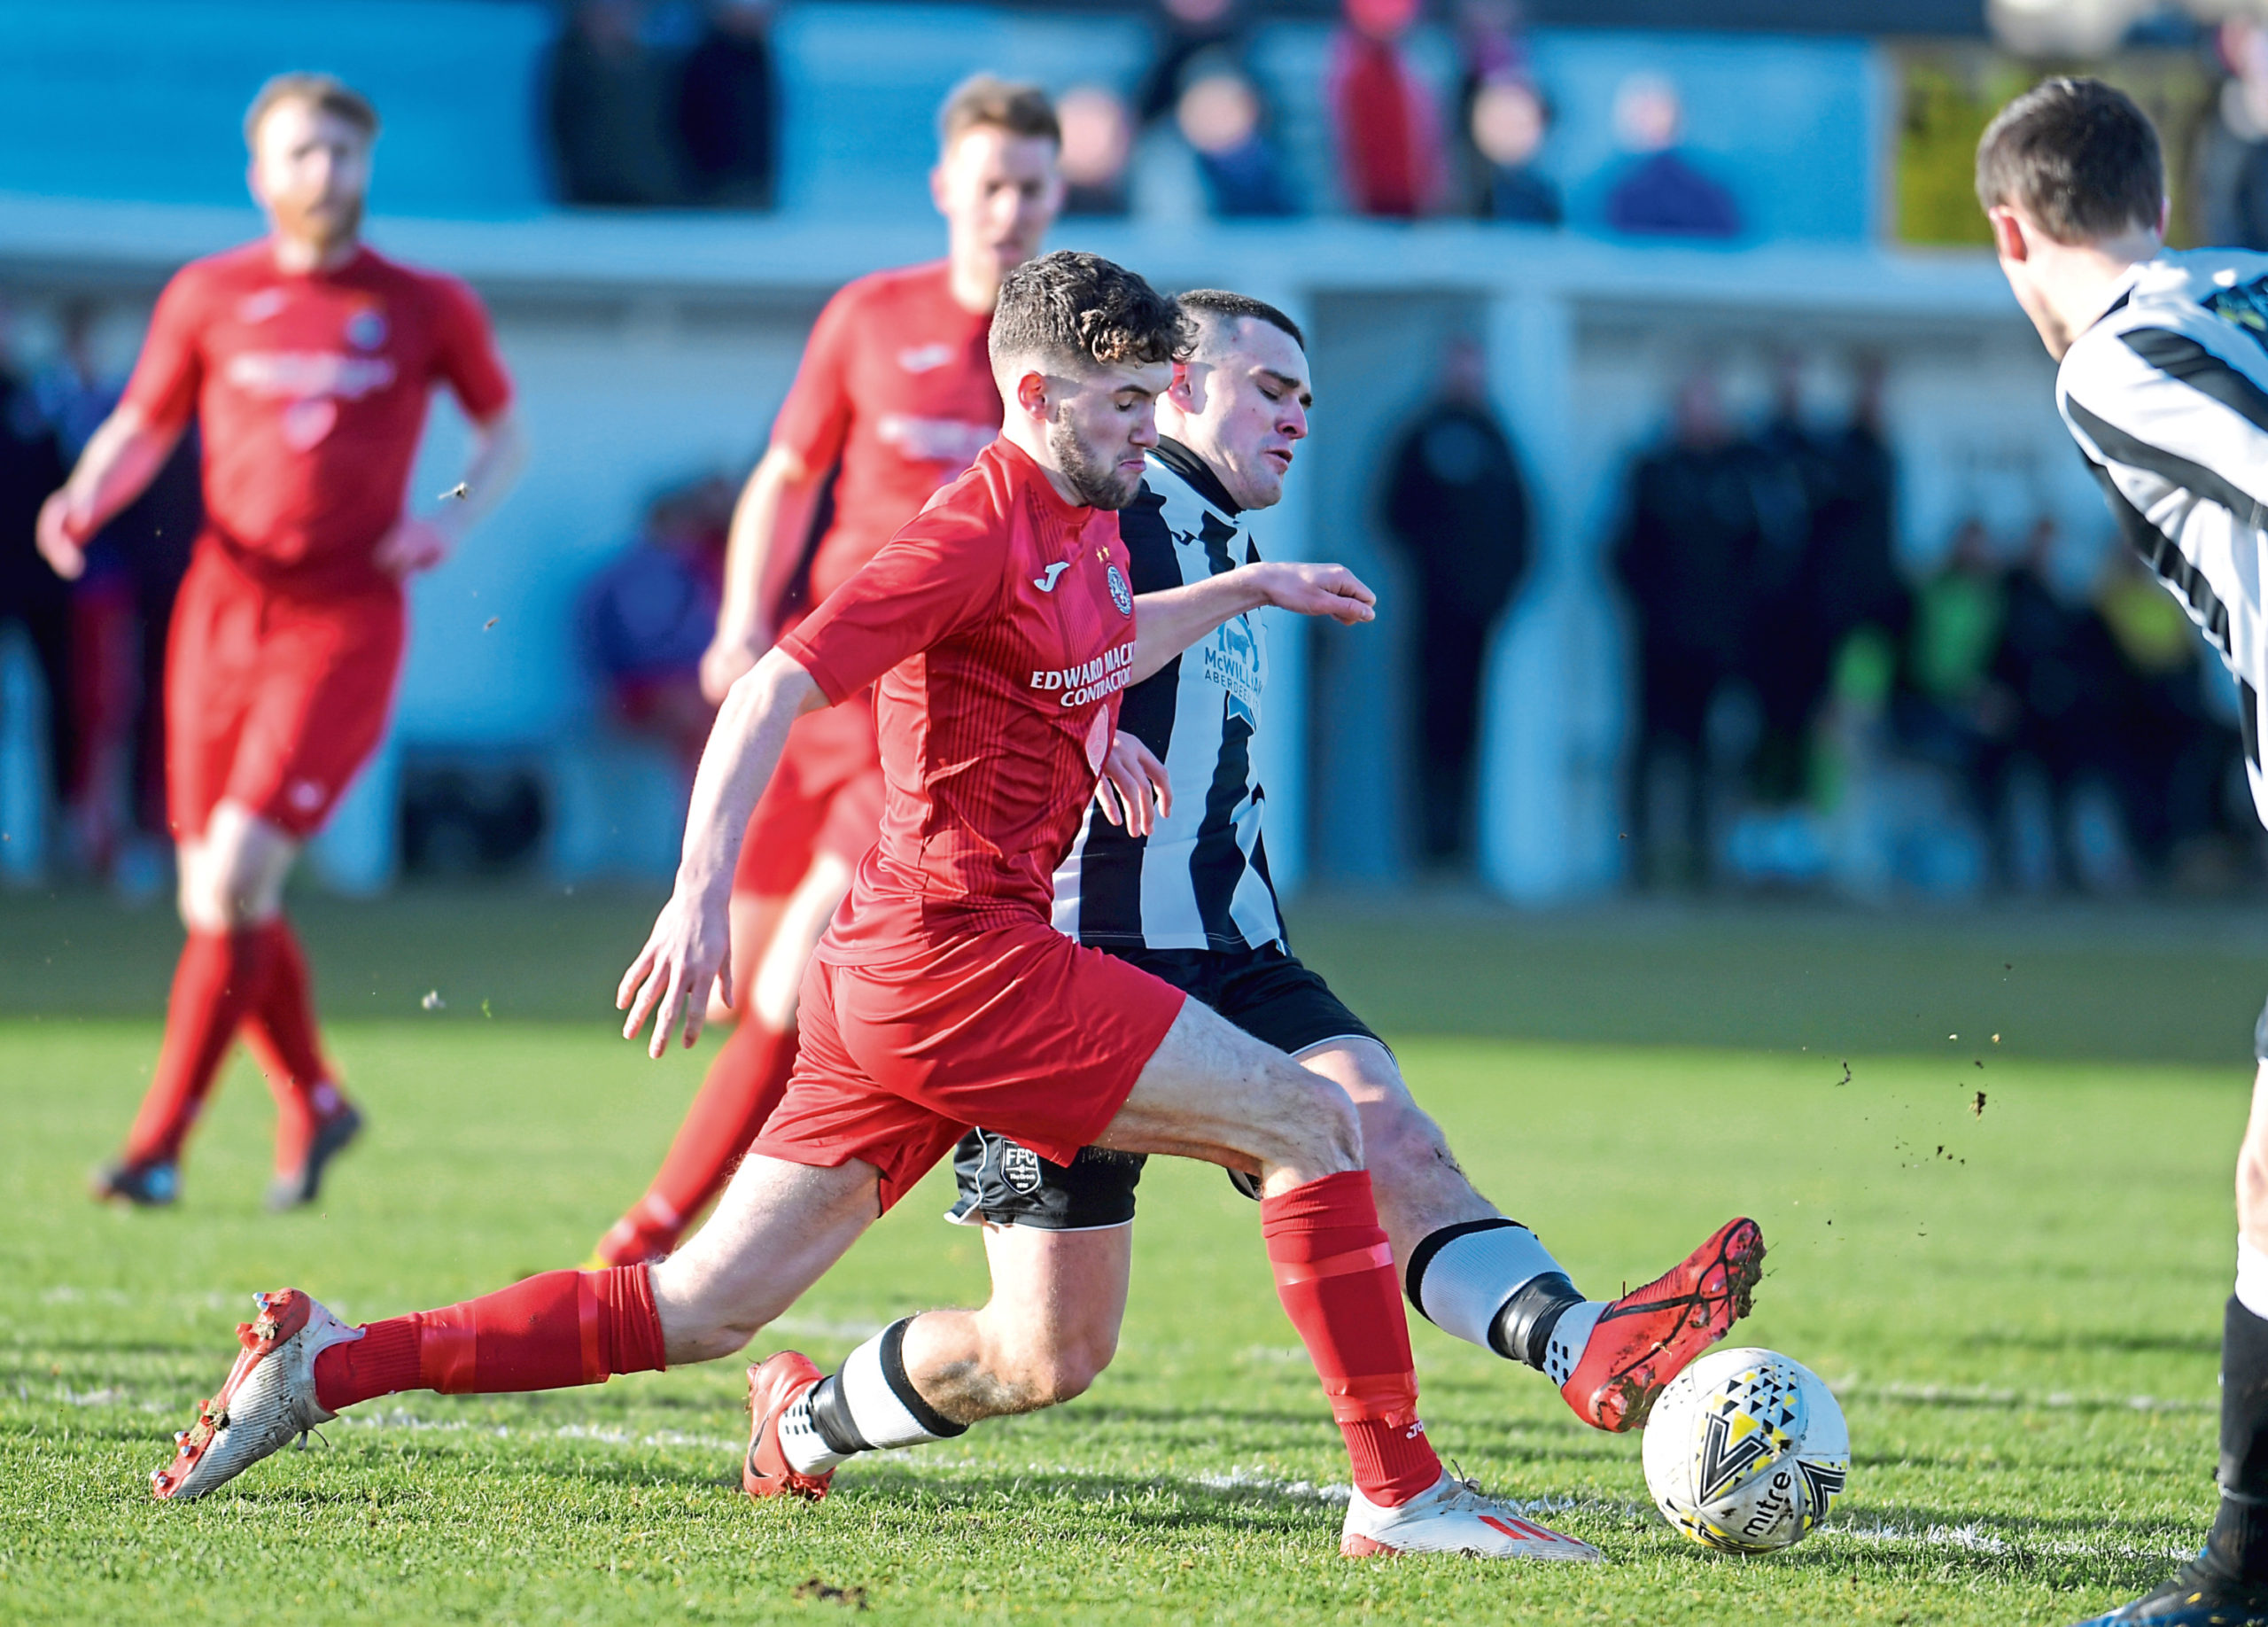 Tom Kelly playing for Brora Rangers